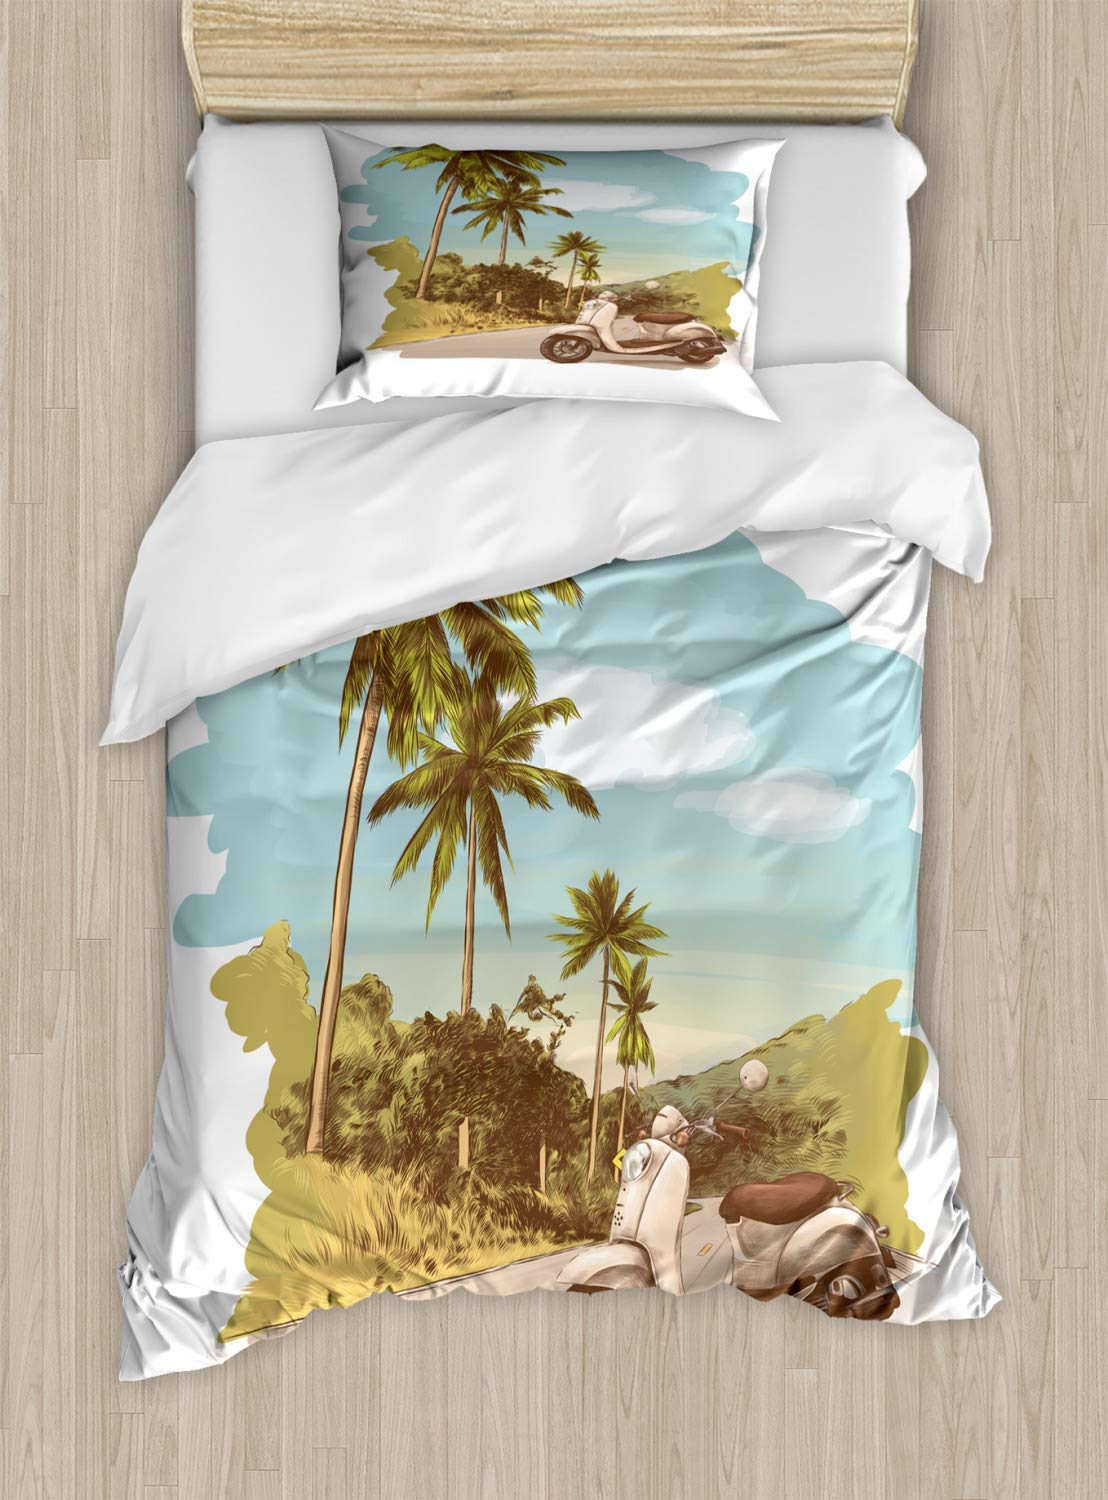 Retro Duvet Cover Set, Bed Sheets, Faded Effect Vintage Scooter Stands on The Road Jungle with Palm Trees on The Edges, Decorative 3 Piece Bedding Set with 2 Pillow Sham, Queen Size, Multicolor by SLobyy